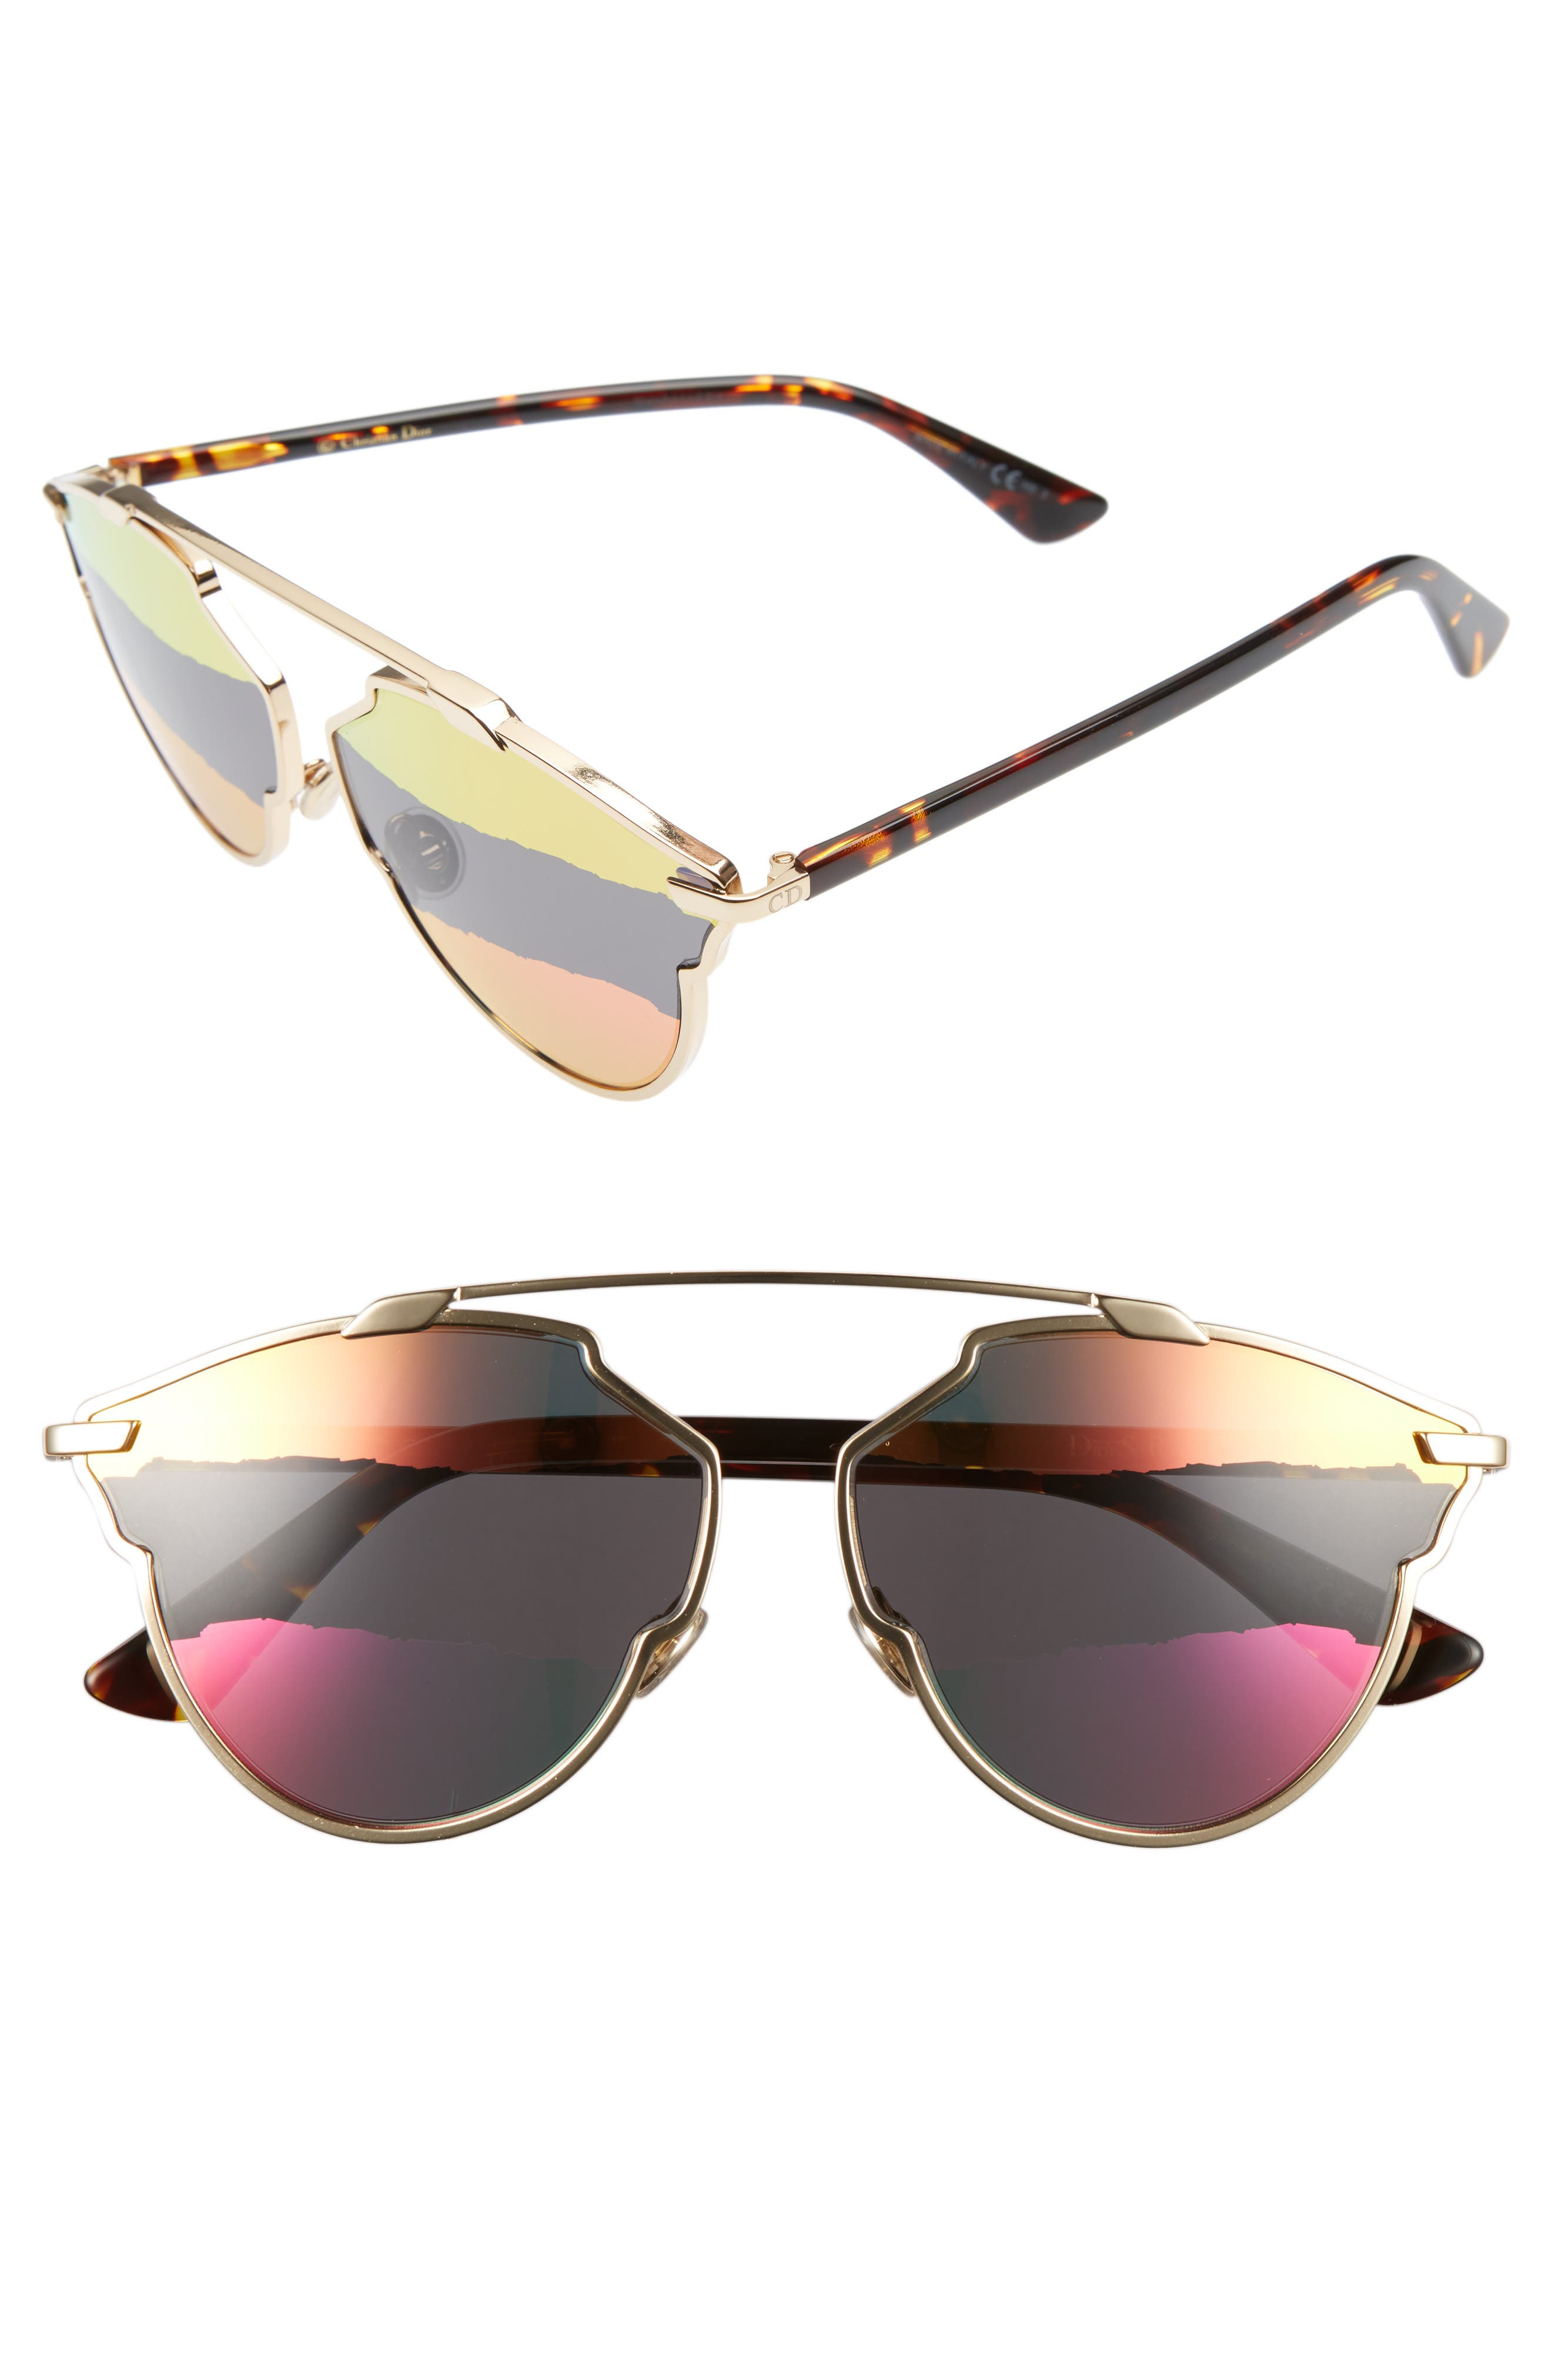 Alternate Image 1 Selected - Dior So Real 59mm Brow Bar Sunglasses